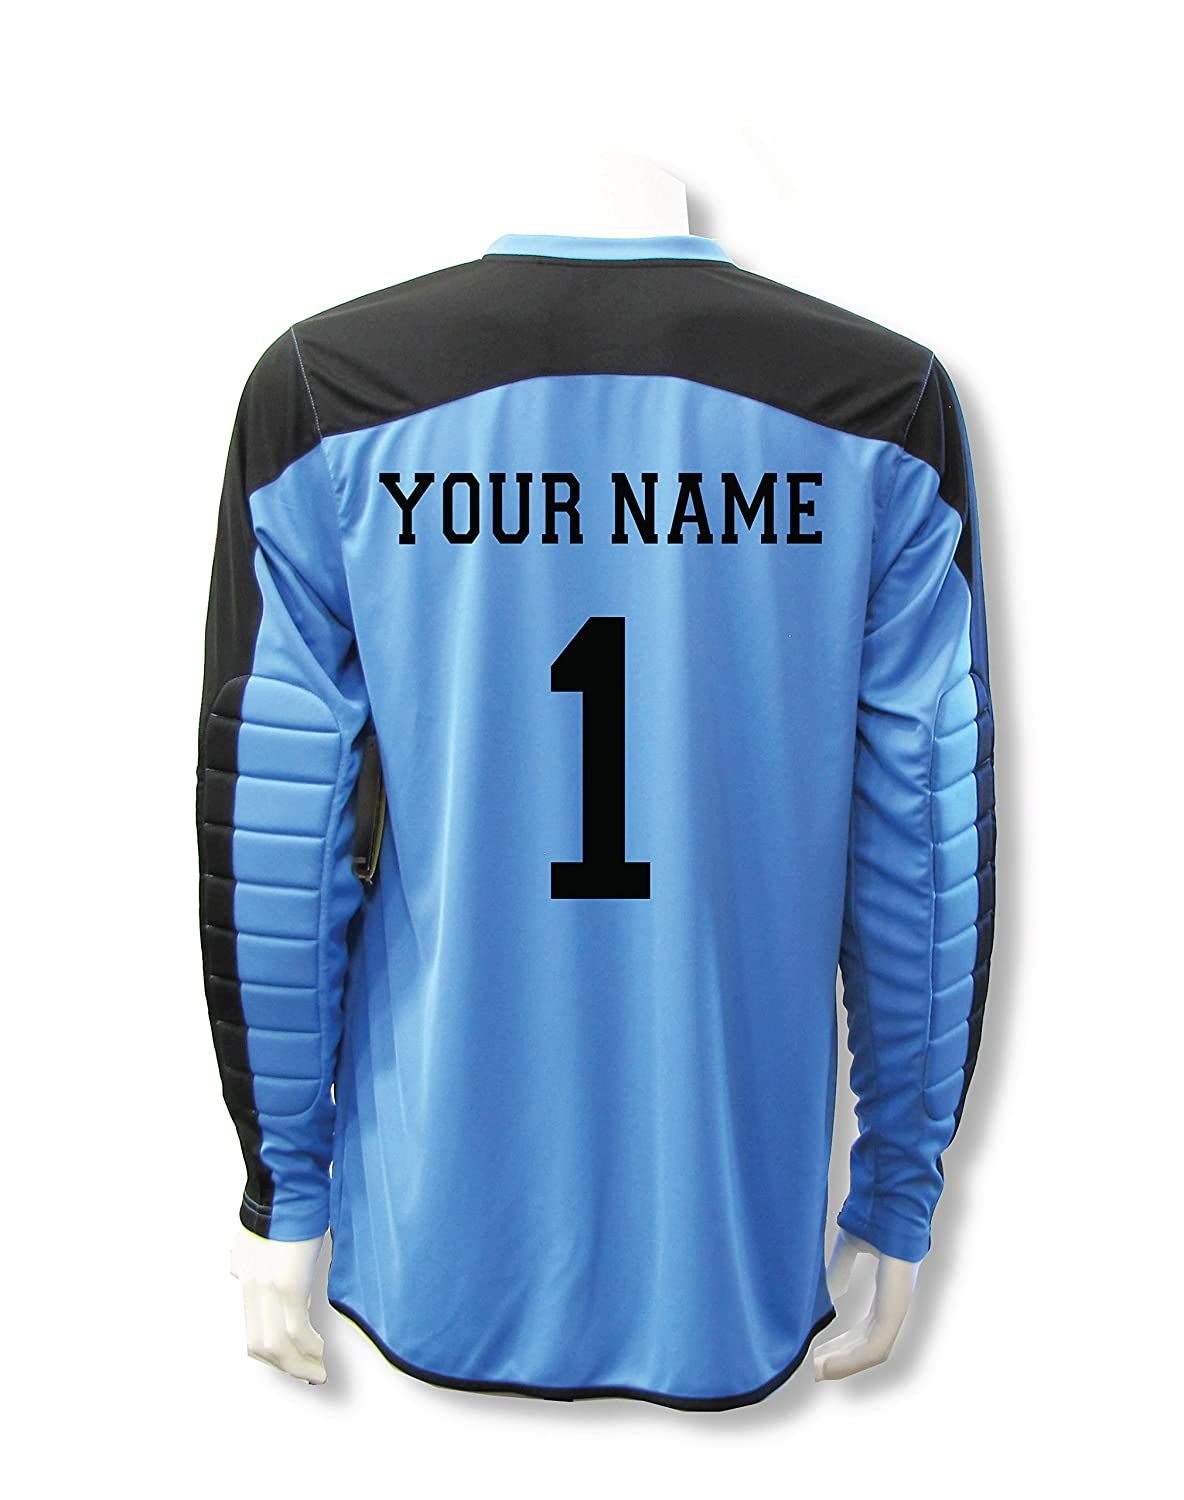 Diadora Enzo Goalkeeper Jersey Personalized with your name and number B076PXP1VNブルー(Columbia Blue) Youth Large